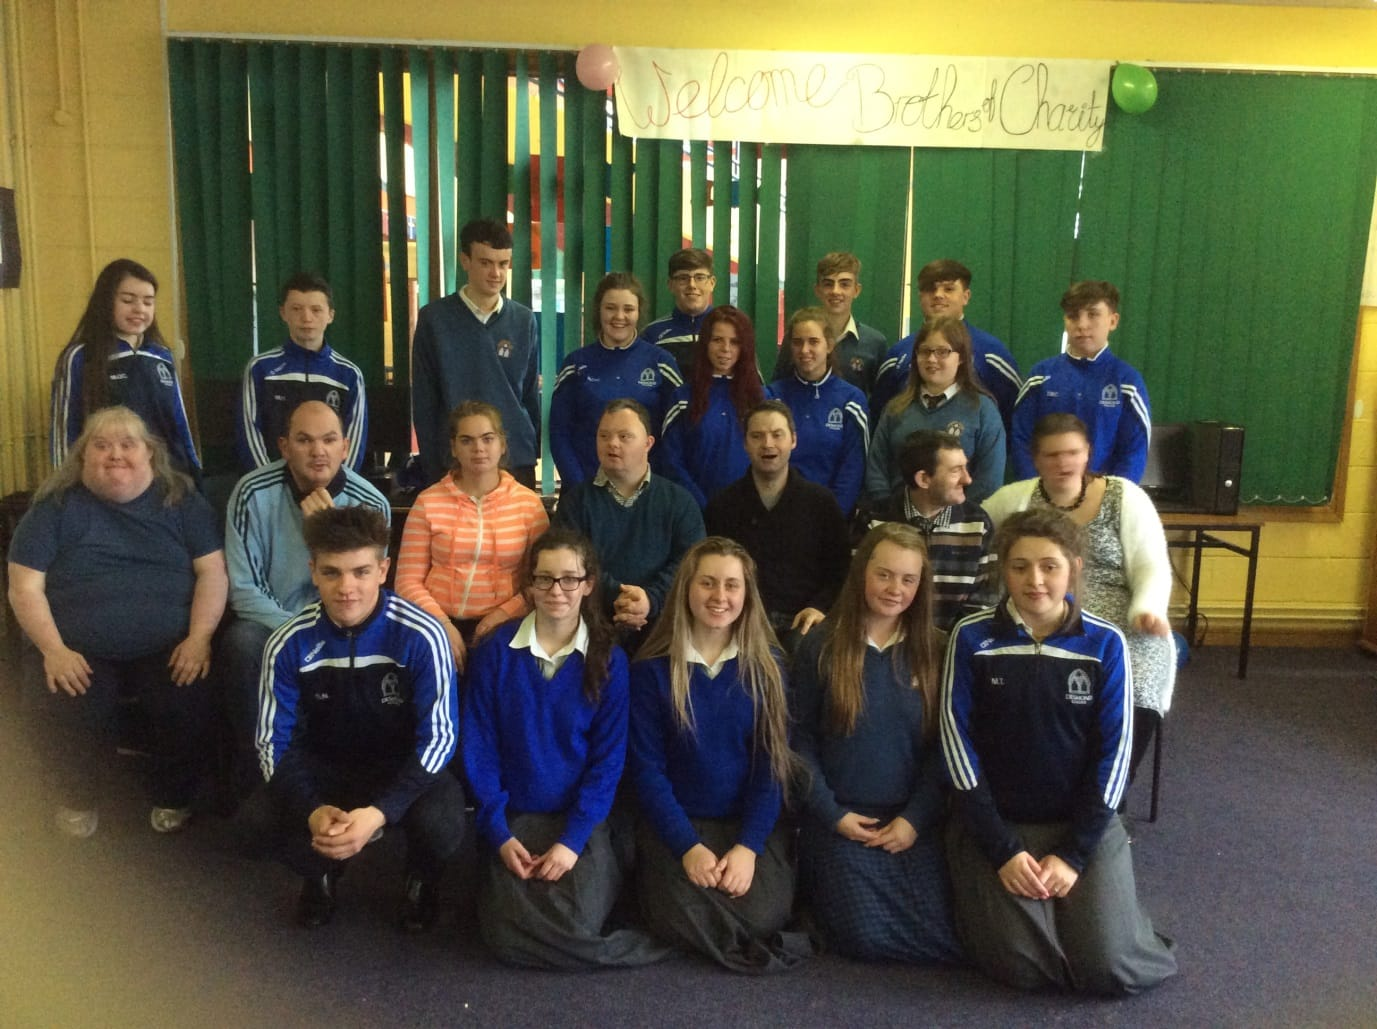 May 2016: Transition year students from Desmond College pictures with some people from the brothers of charity at the end of year celebration